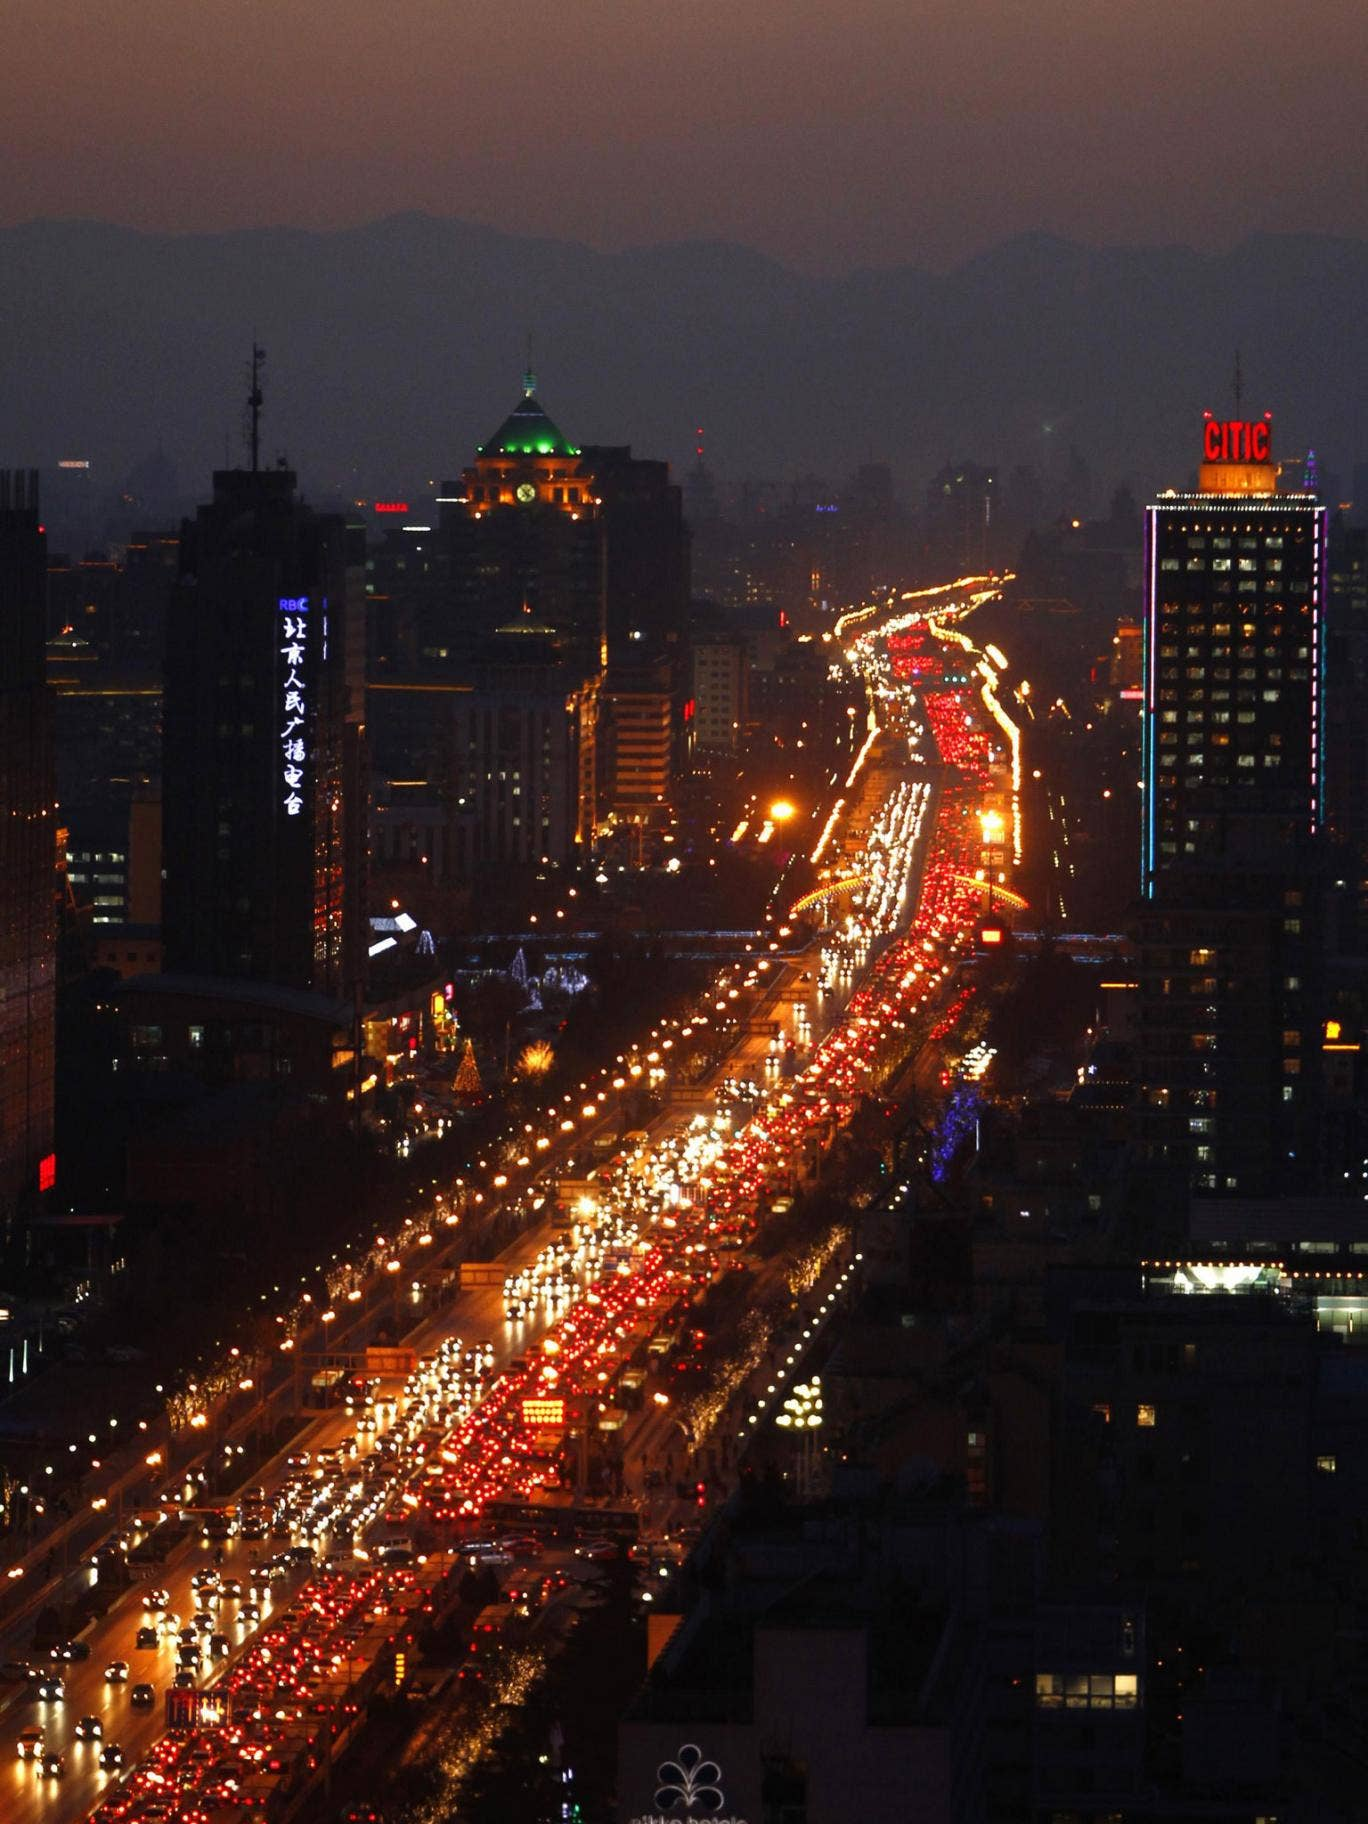 China's spike in car ownership has led to restrictions